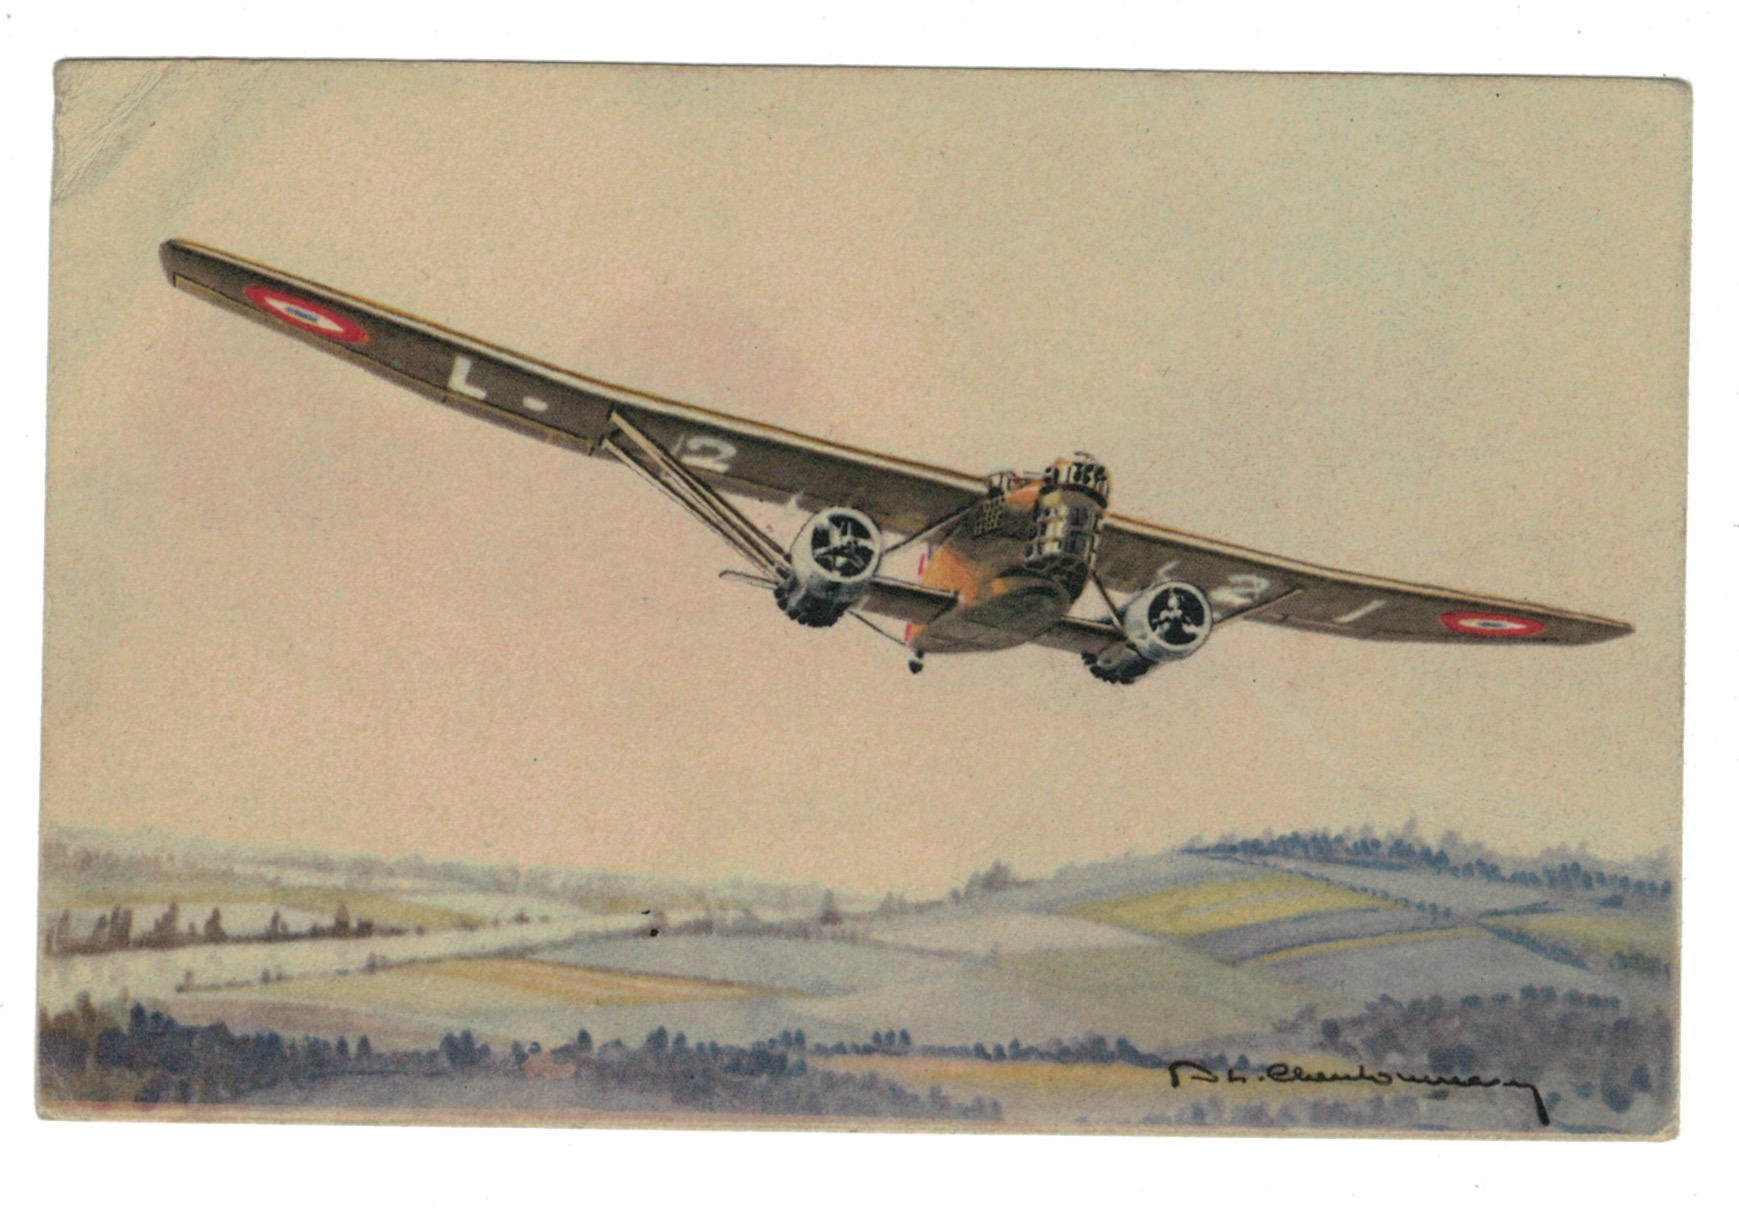 Série 29 Cartes Postale - Aviation - Guerre 39/45 - Illustration - AEAEC PARIS